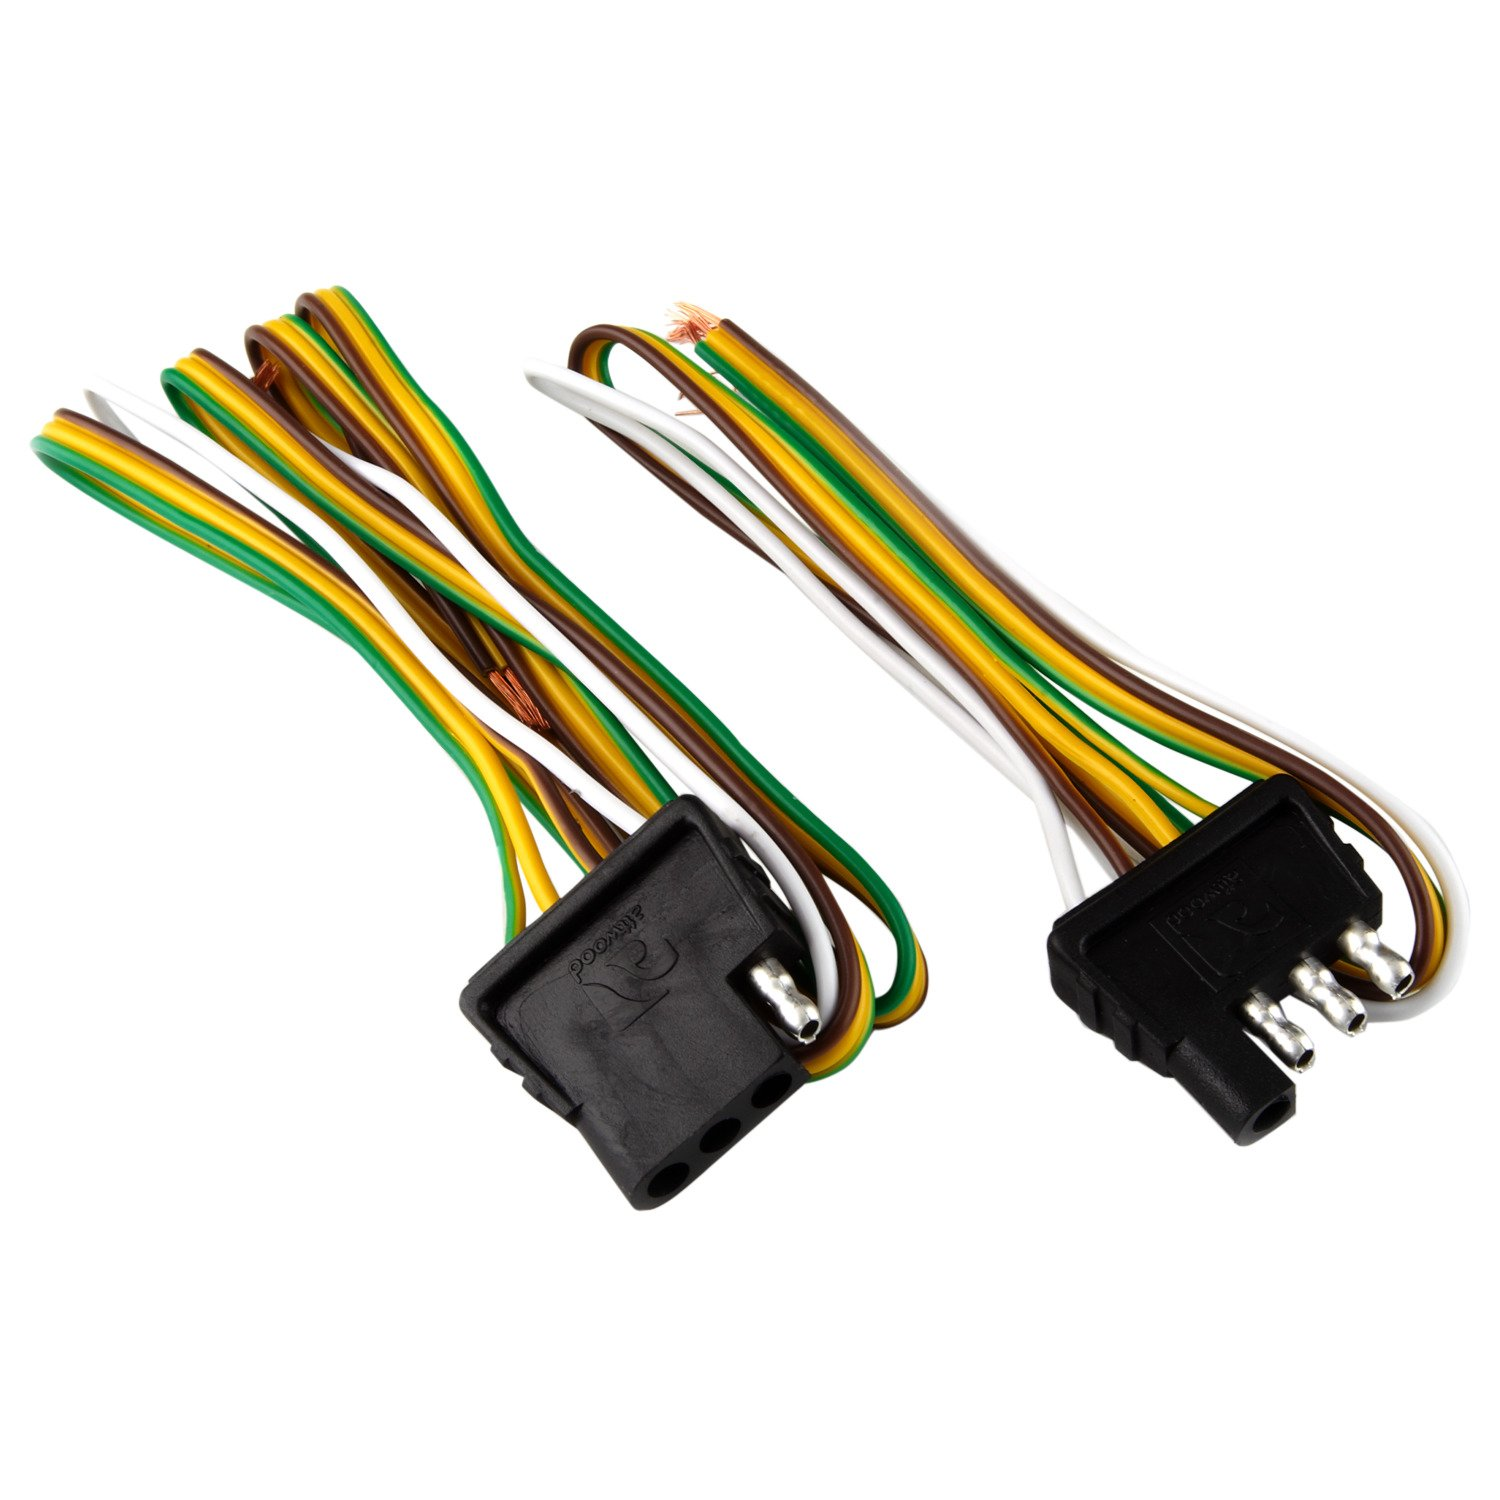 medium resolution of attwood 4 way flat wiring harness kit for vehicles and trailers 4 flat wiring harness